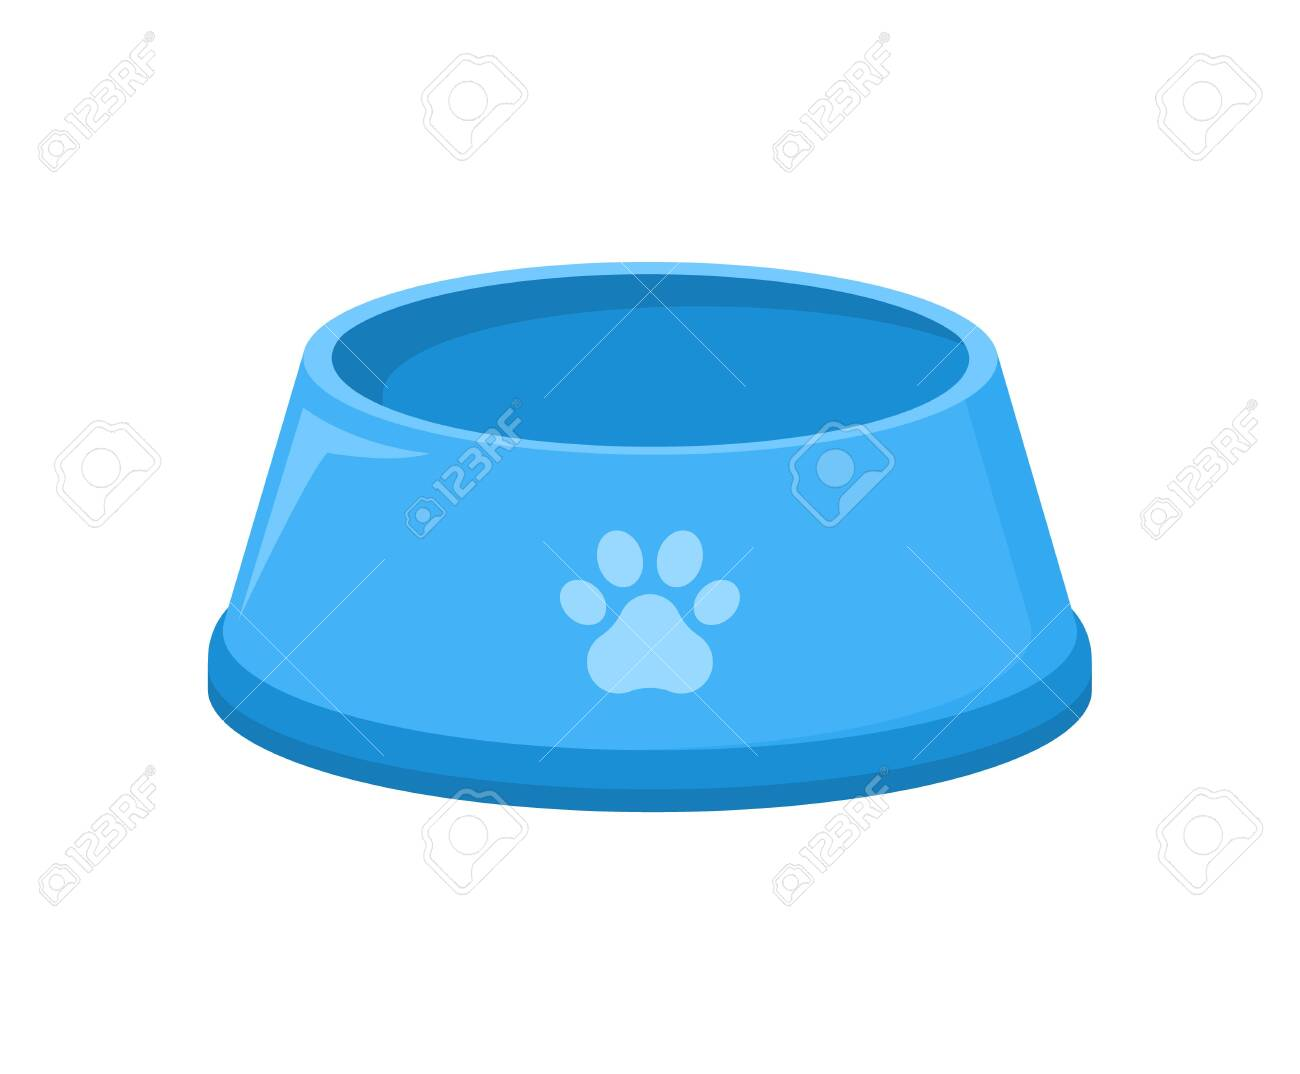 Pet food bowl for dog cat vector icon. Pet plate isolated flat feed bowl - 144227501